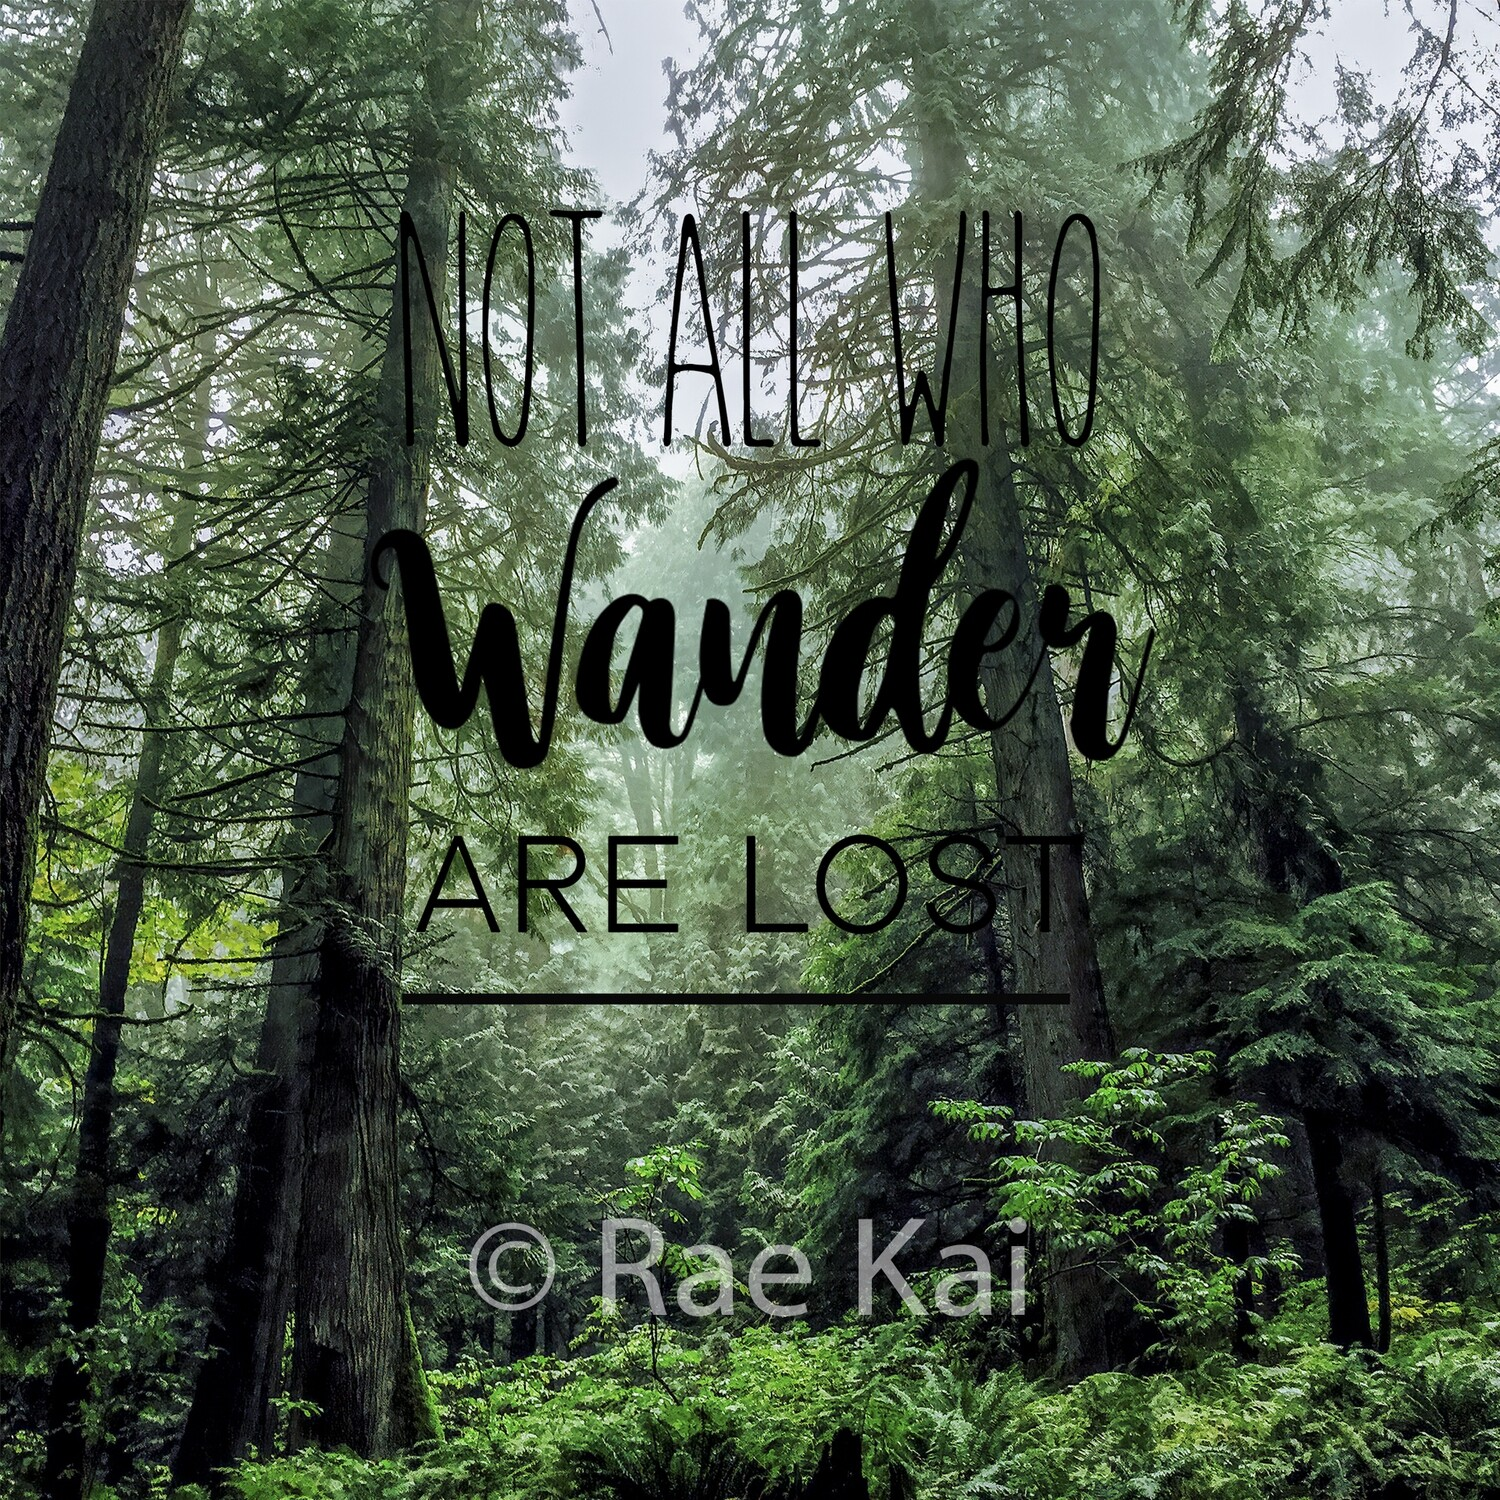 Not All Who Wander Are Lost-Inspirational Square Photo